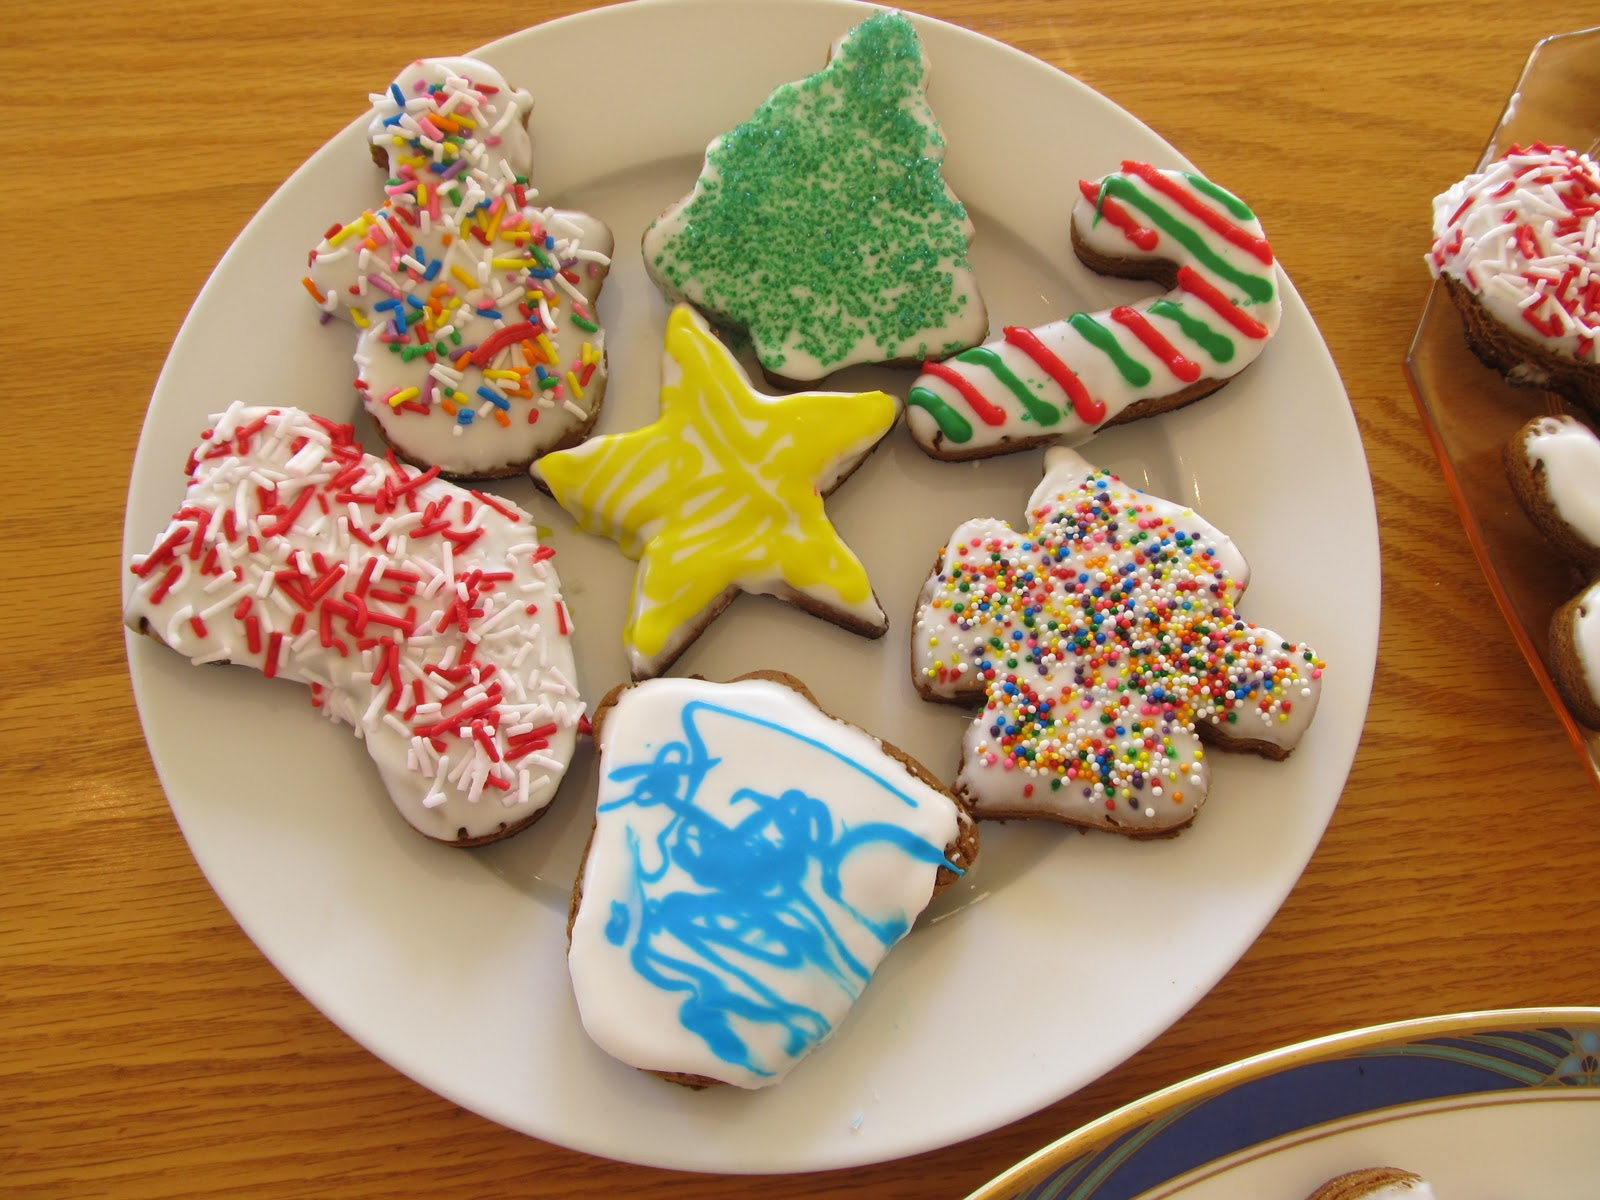 High Park Home Daycare Royal Icing Makes Kids Cookie & Christmas Cookie Decorating Ideas For Kids - Elitflat